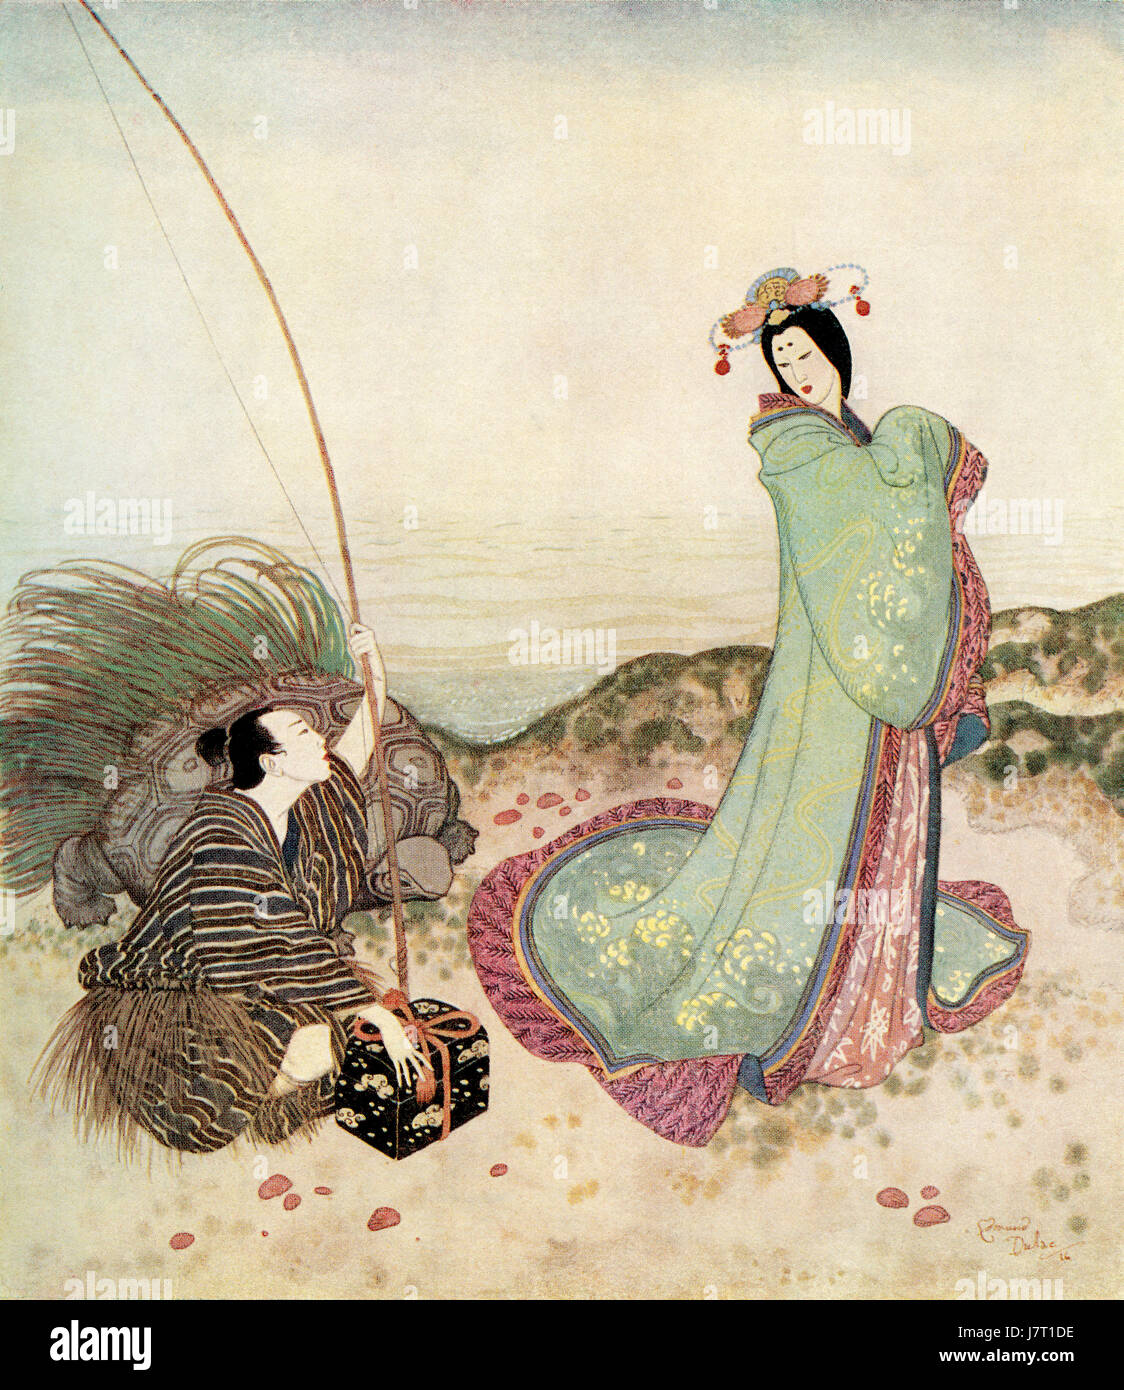 ' Urashima was so enchanted that he could not speak a word'.   Illustration from the Japanese fairytale - Stock Image